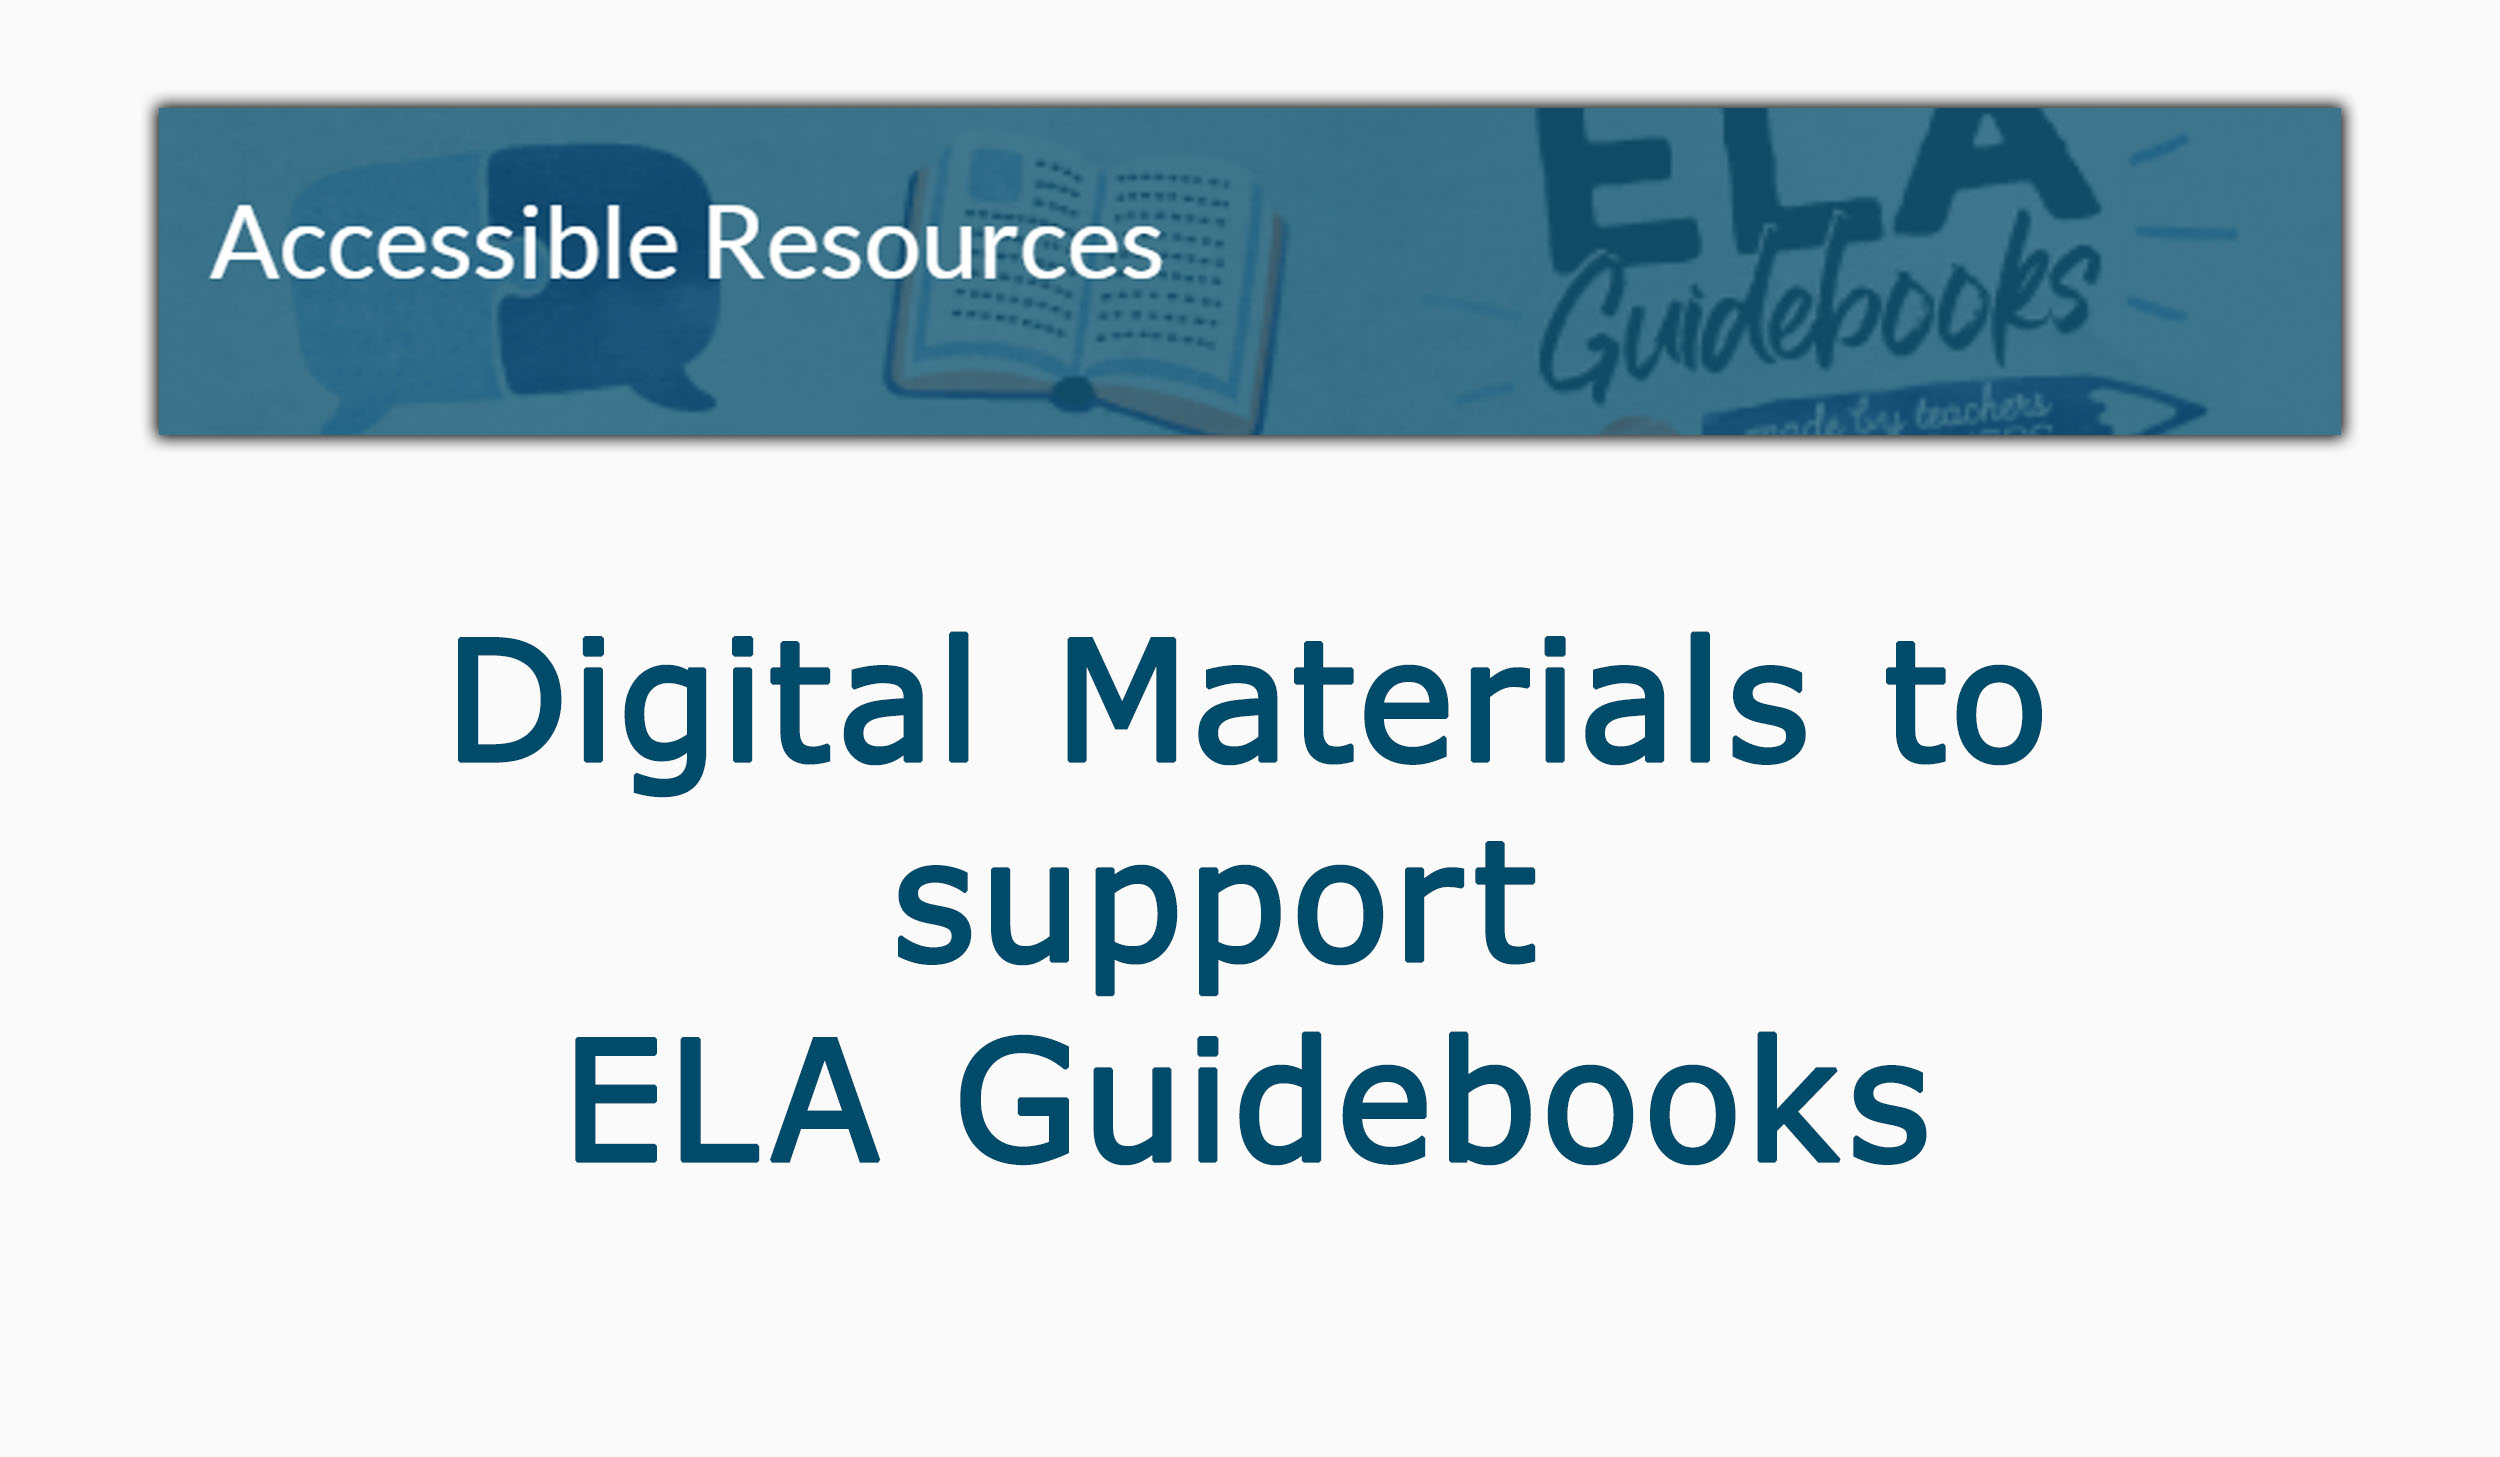 click for more information about ELA Guidebooks  accessible resources